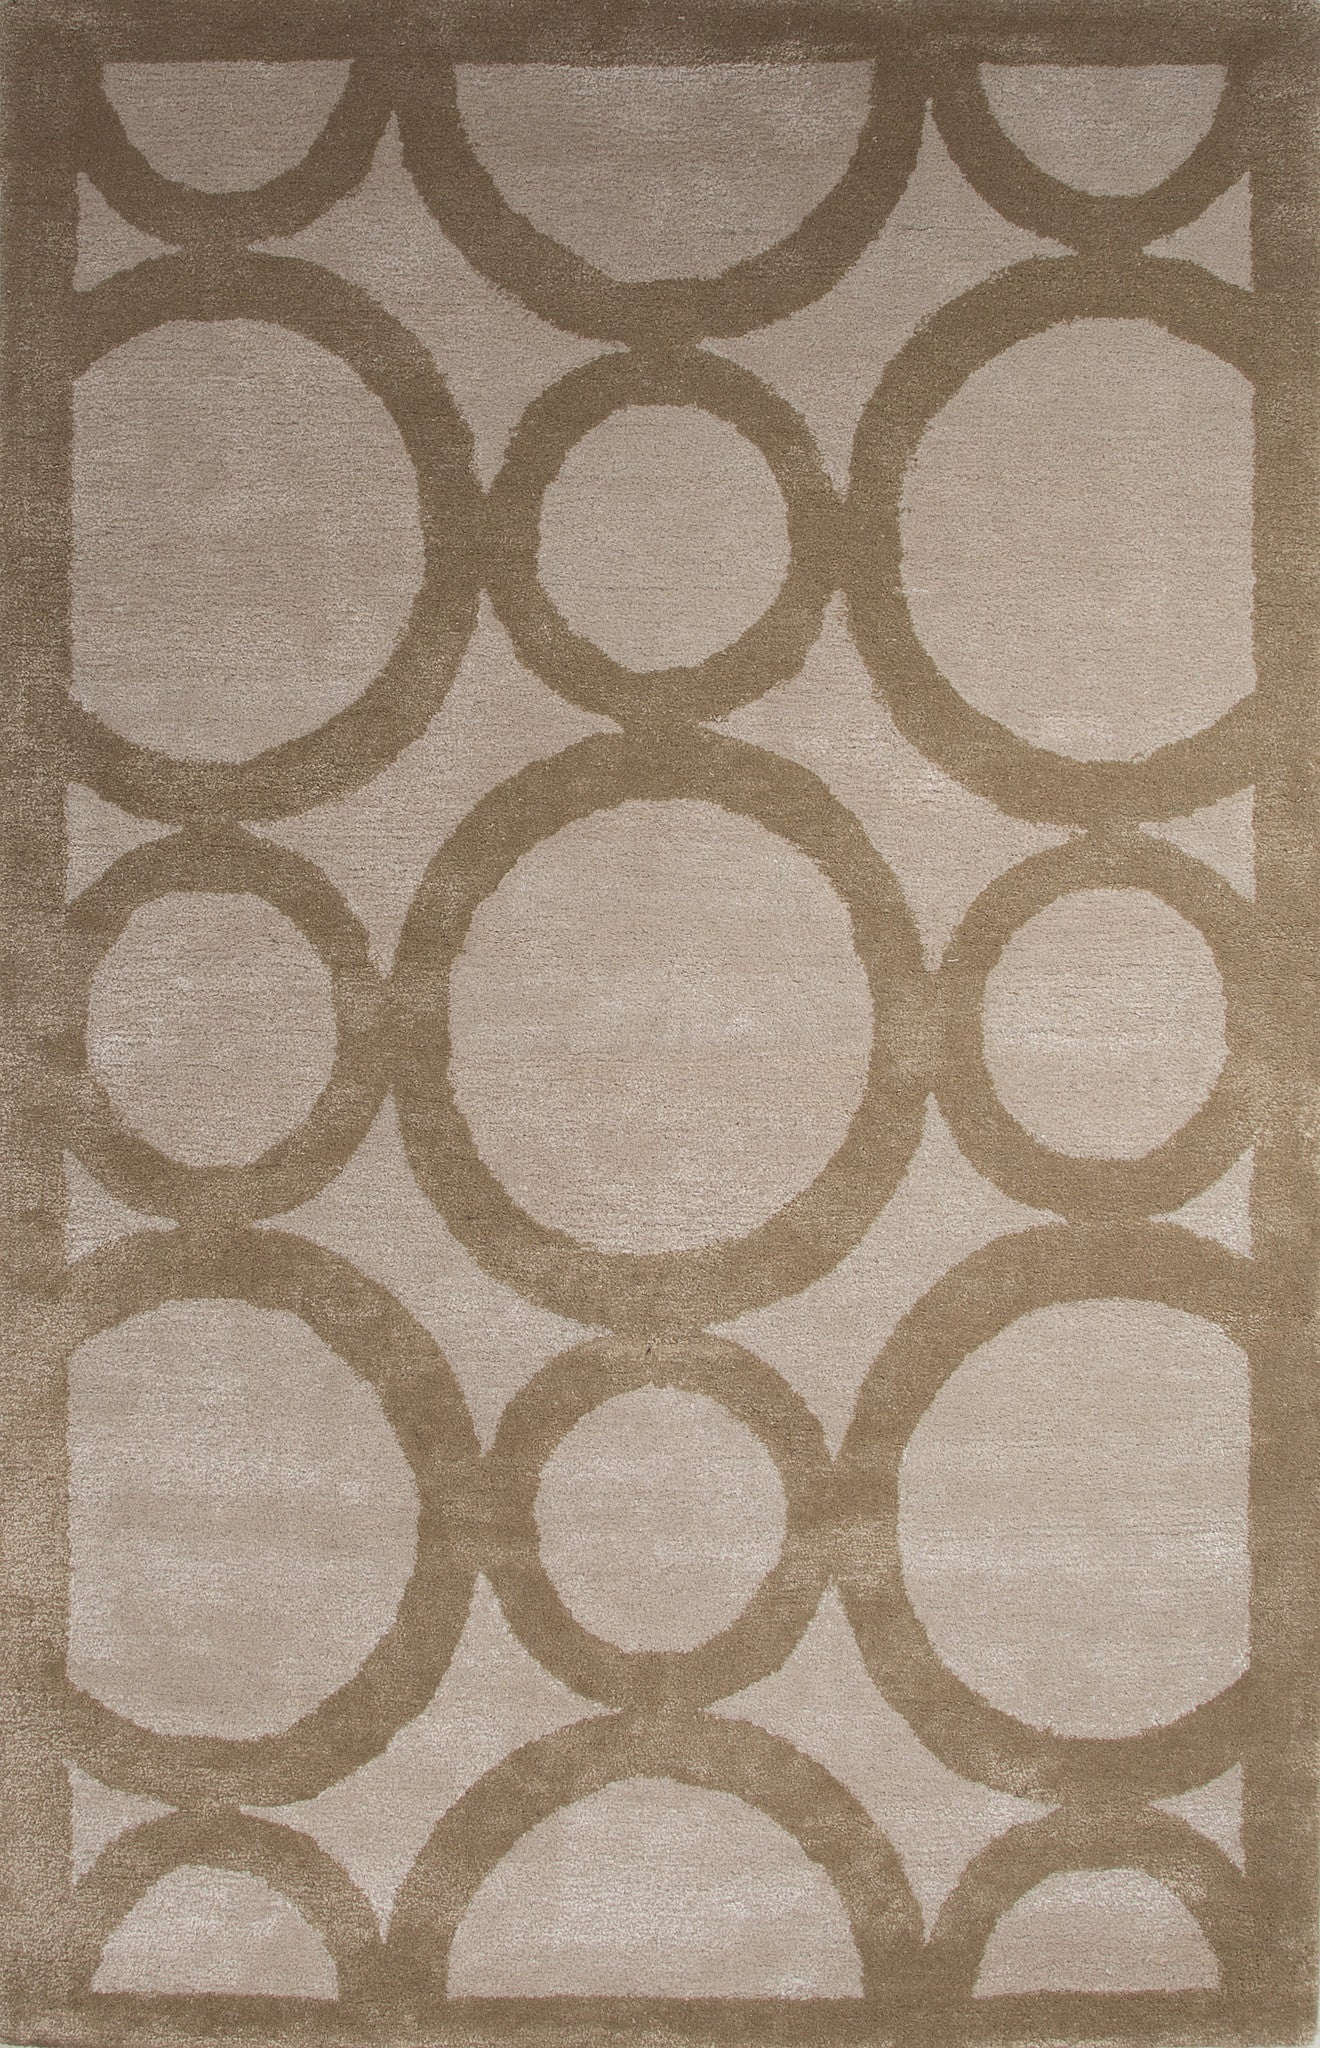 Jaipur rugs modern geometric pattern tan ivory wool and for Contemporary wool area rugs